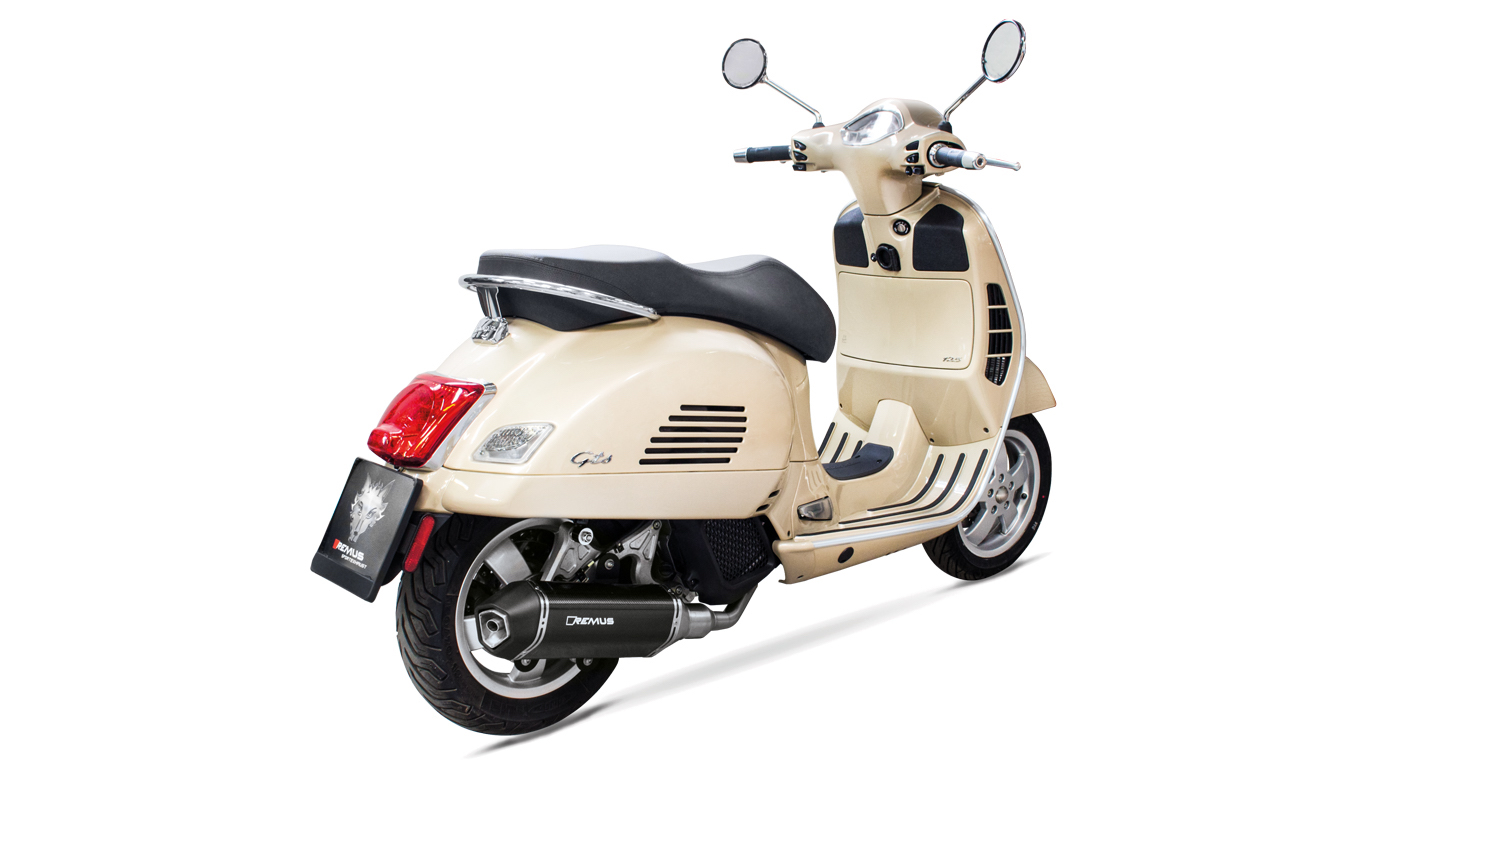 remus news bike info 08 17 piaggio vespa gts 125 mod 17 euro 4. Black Bedroom Furniture Sets. Home Design Ideas